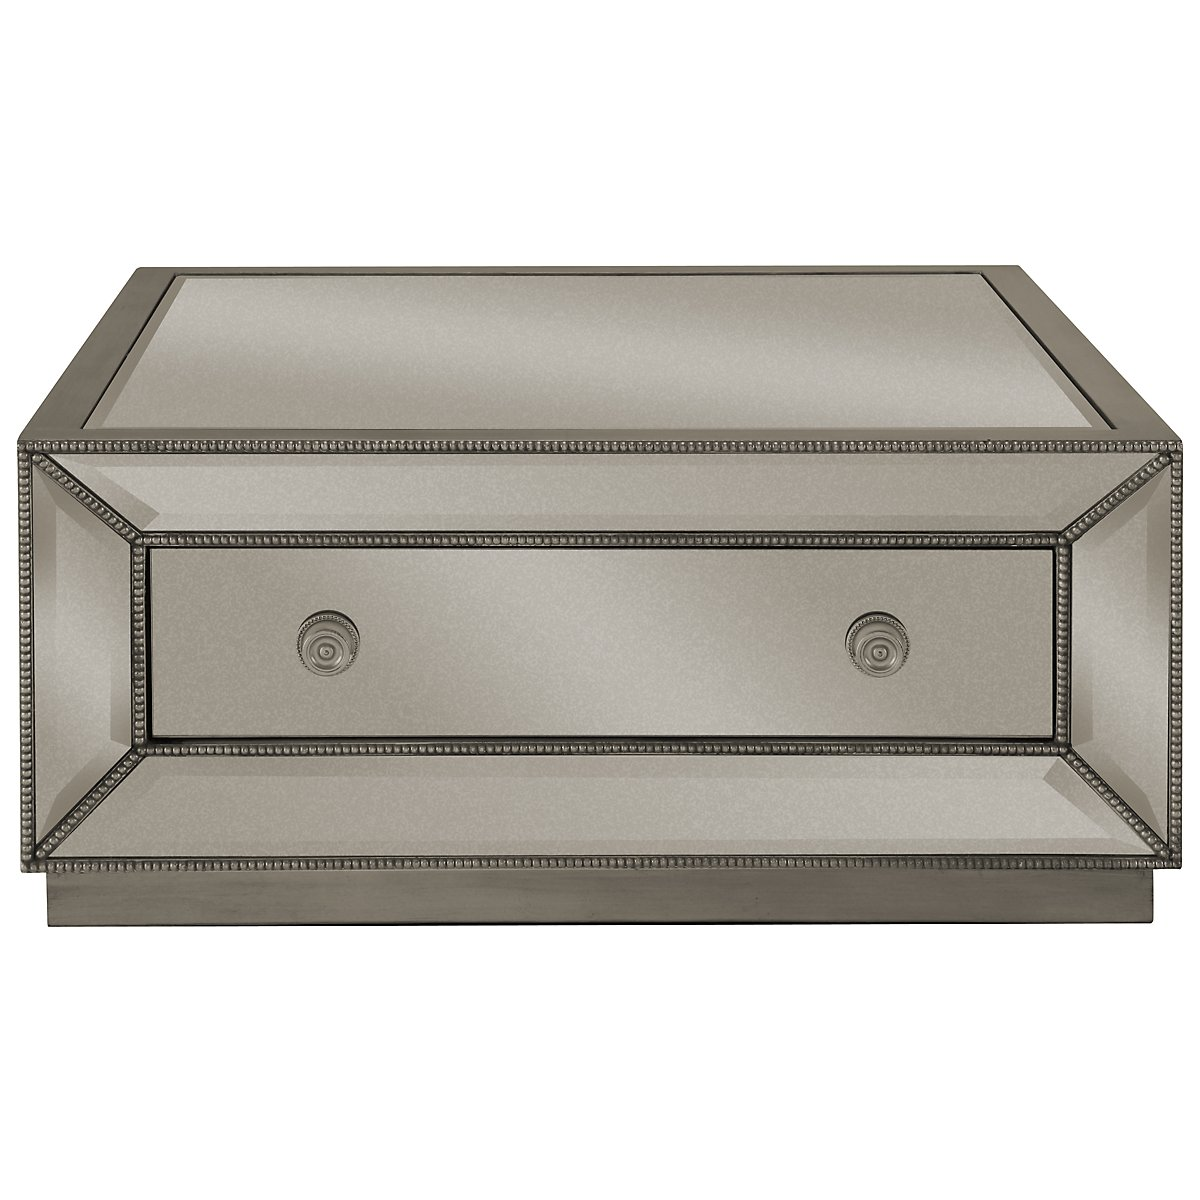 Mirror Coffee Table Square - Adiva mirrored storage square coffee table